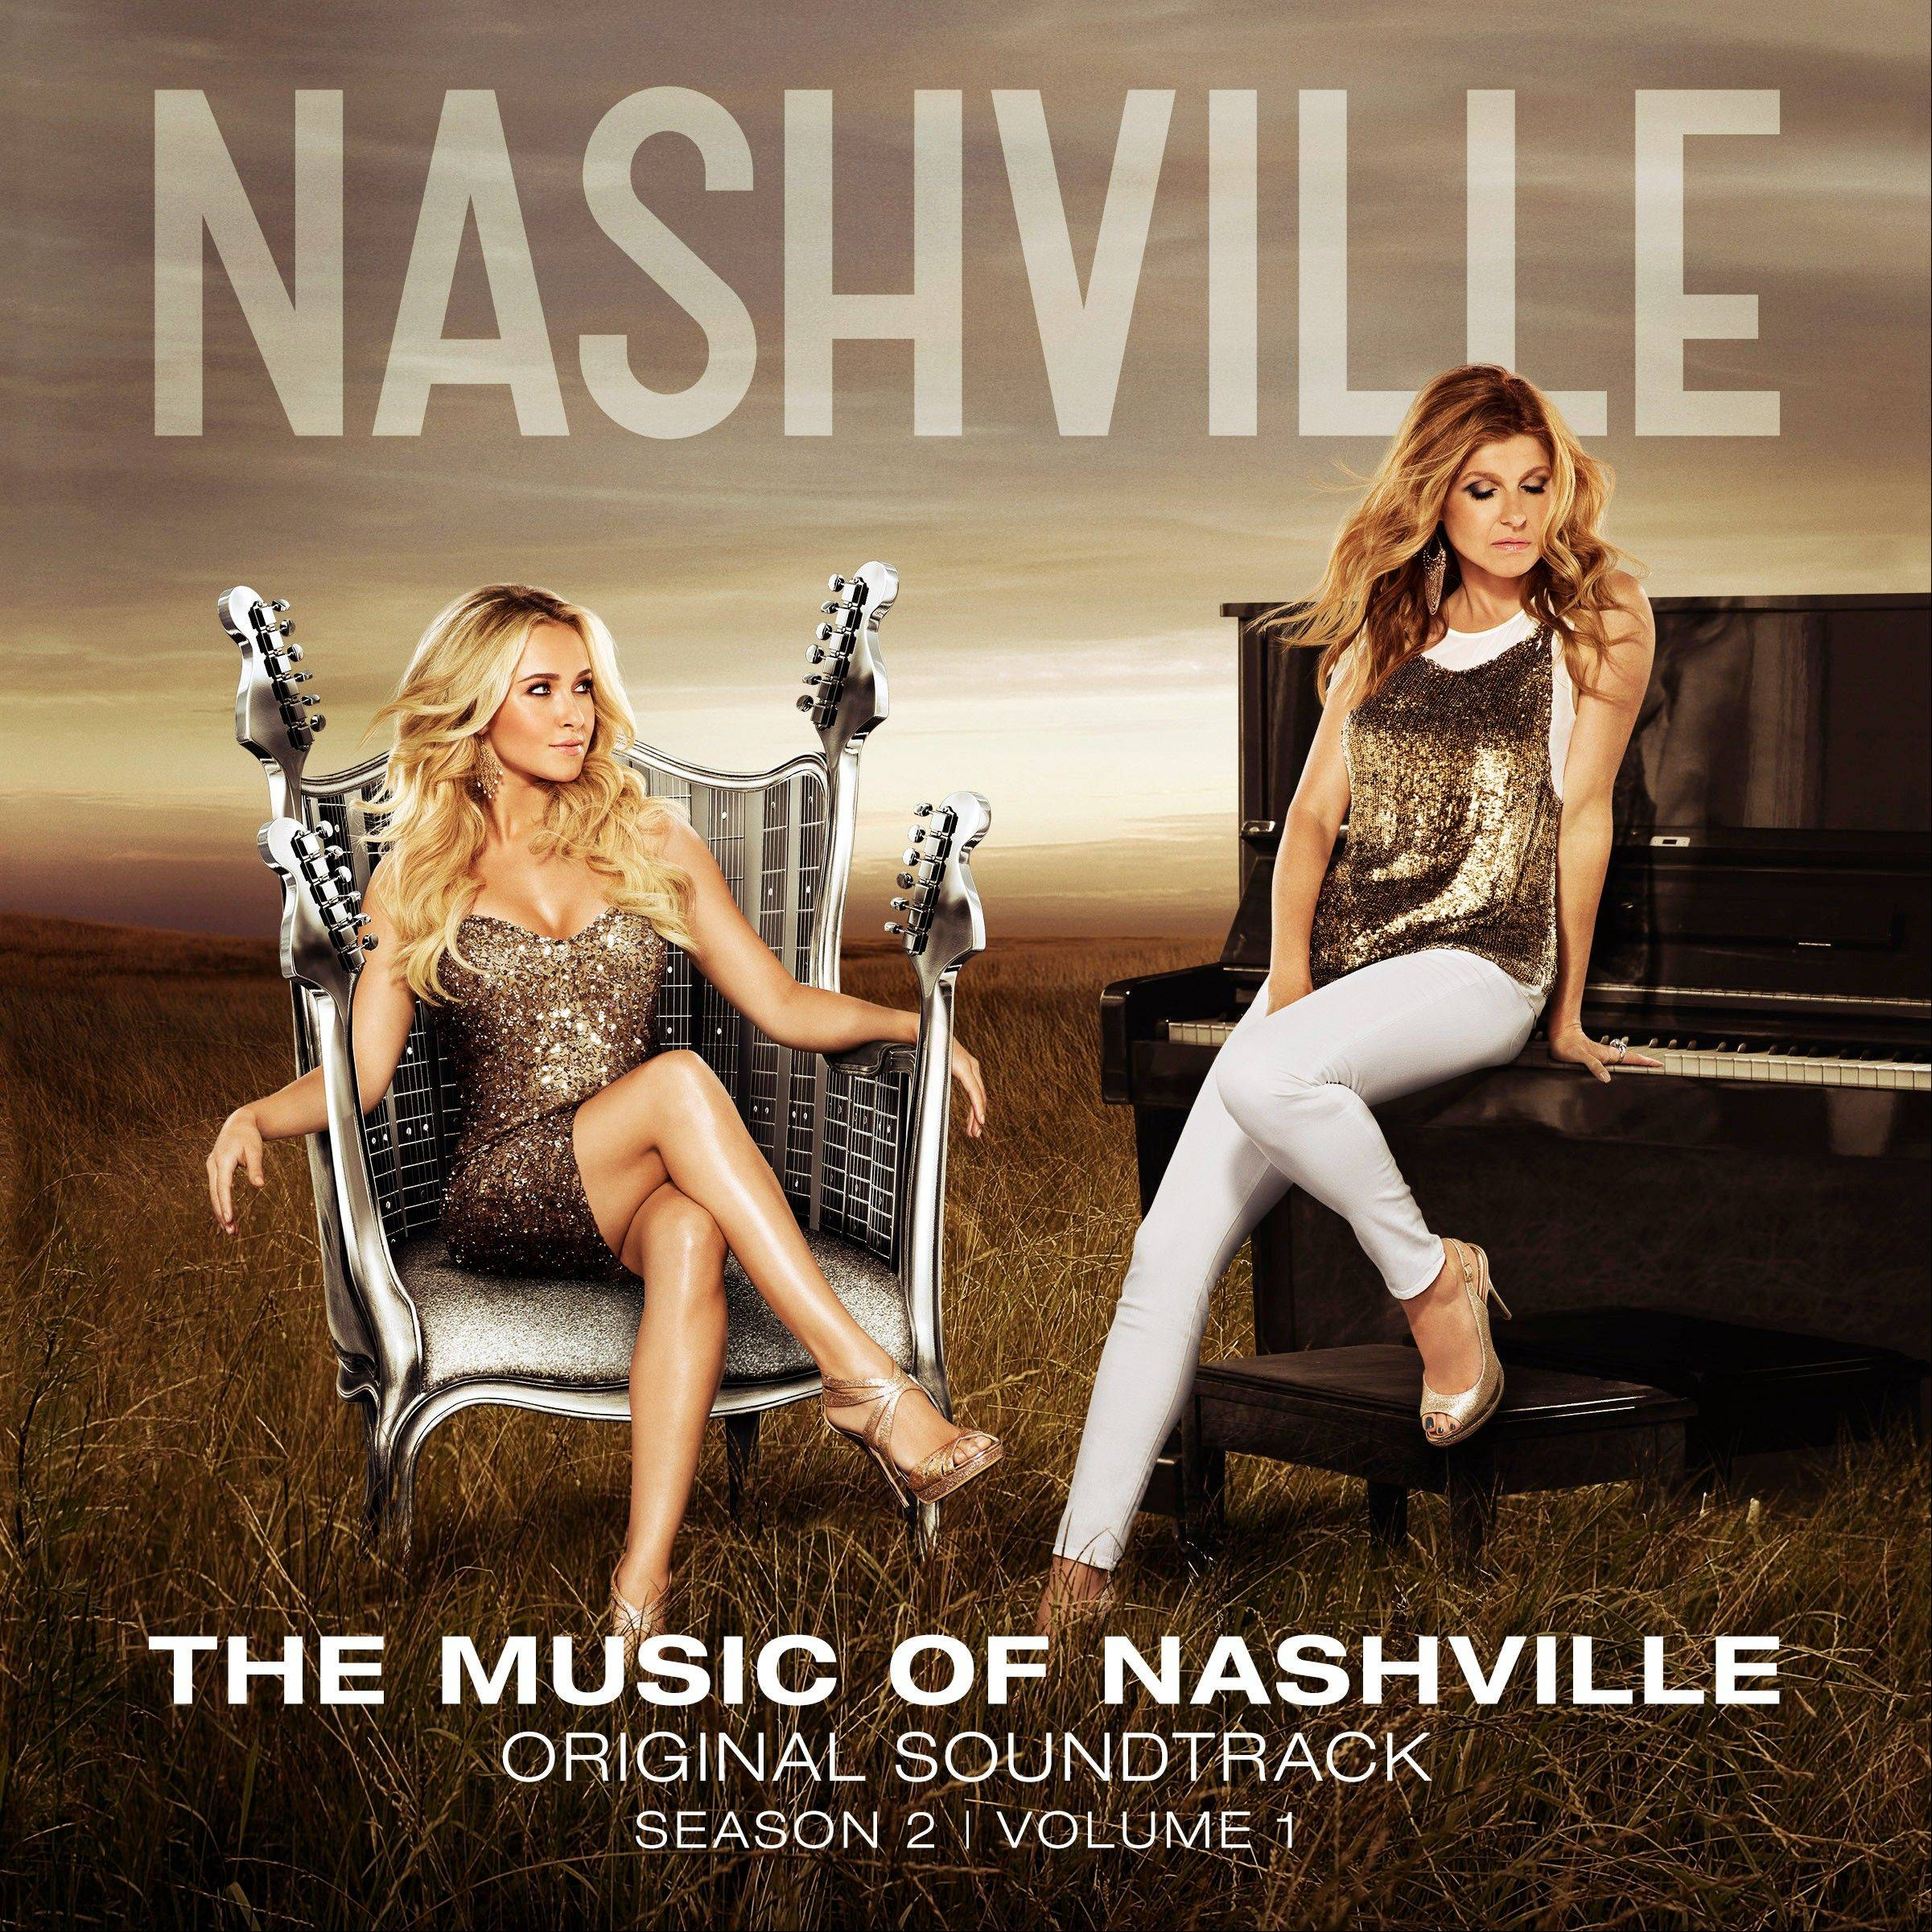 """The Music of Nashville, Season 2, Volume 1"" includes songs from leads Hayden Panettiere and Connie Britton."